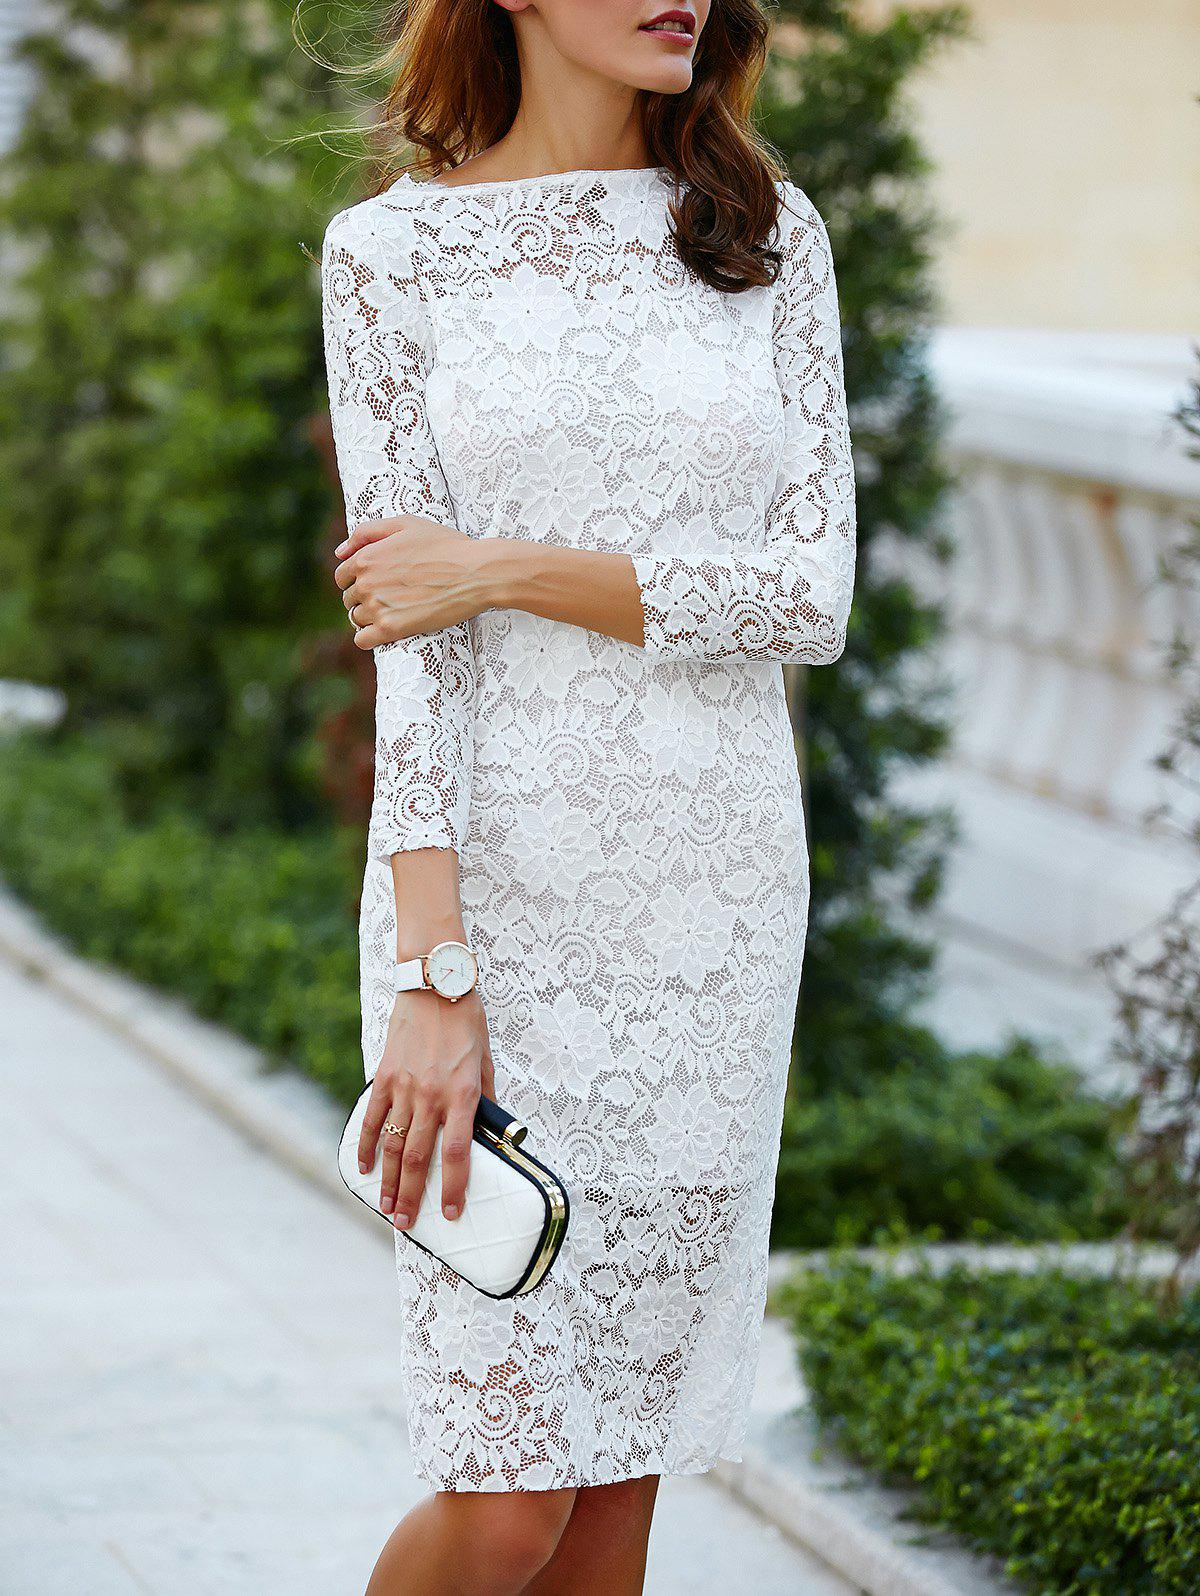 Cut Out Over Hip 3/4 Sleeve Pure Color Lace Dress For Women - WHITE S